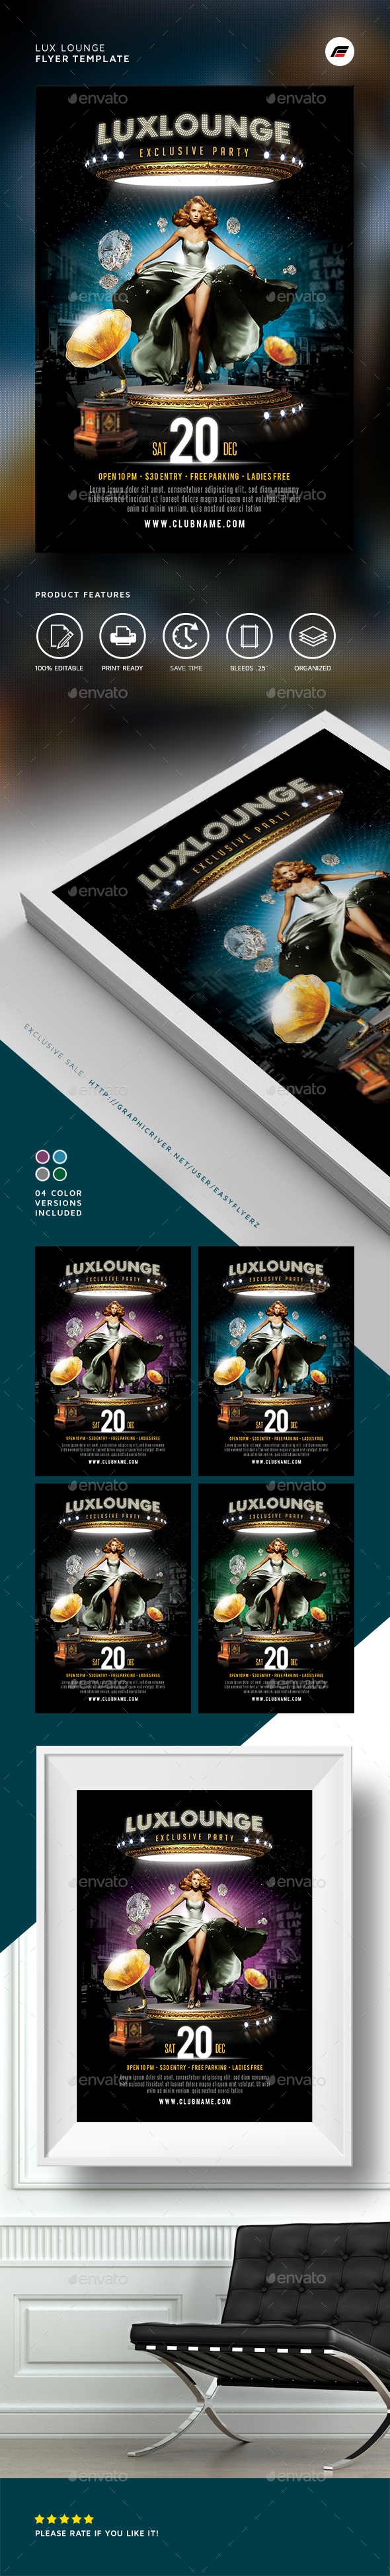 Lux Lounge Flyer Template   Events Flyers